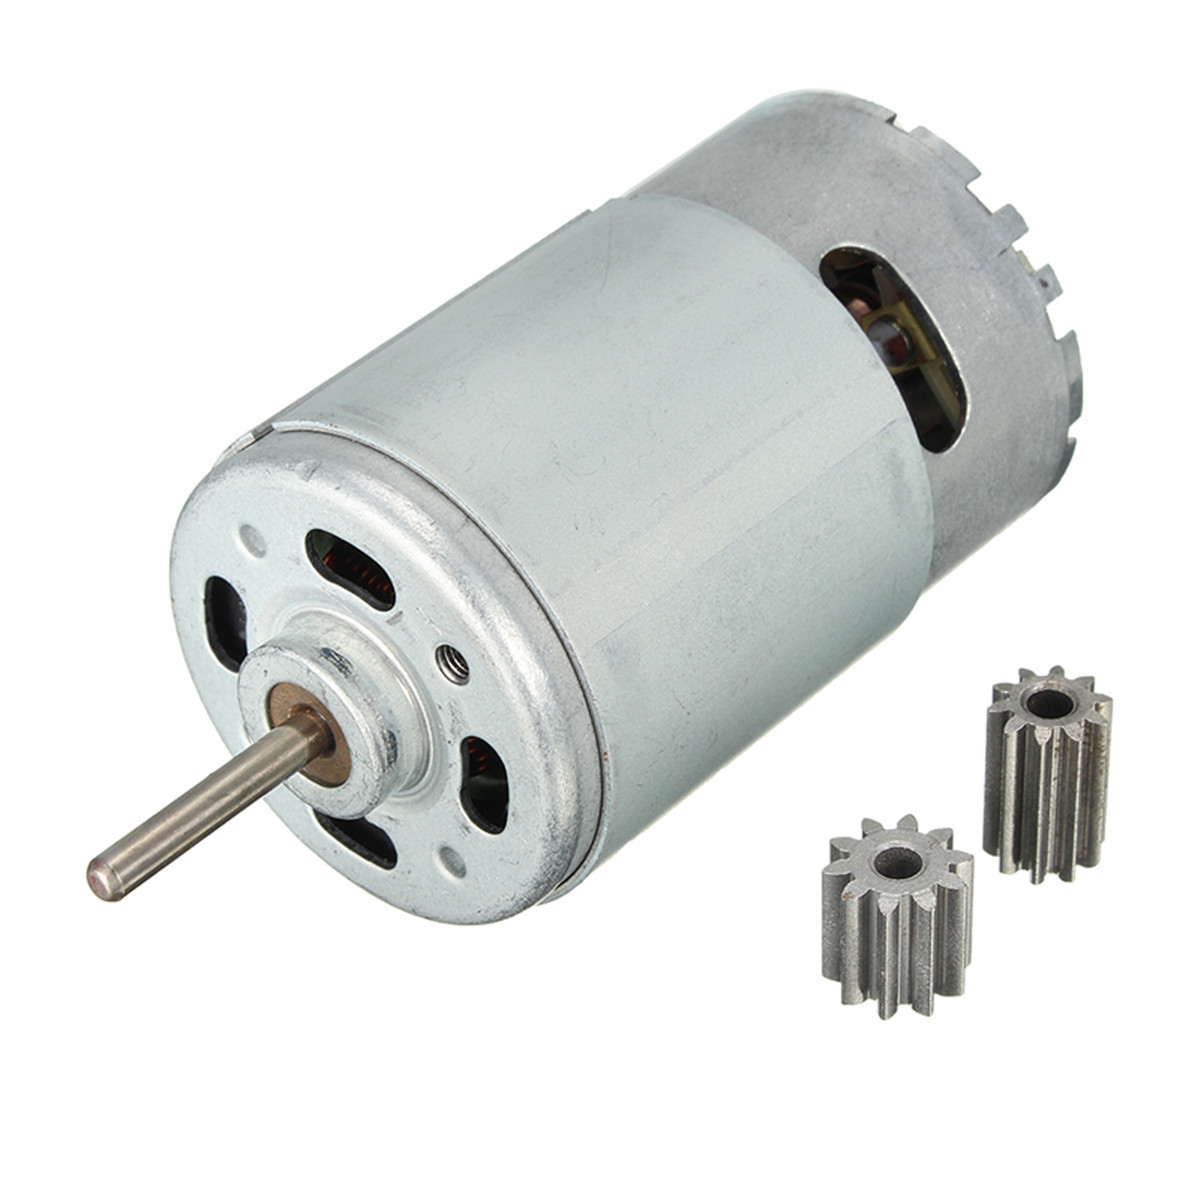 best price dc 12v 30000 rpm motor gears rotary speed gear box motor for kids rc